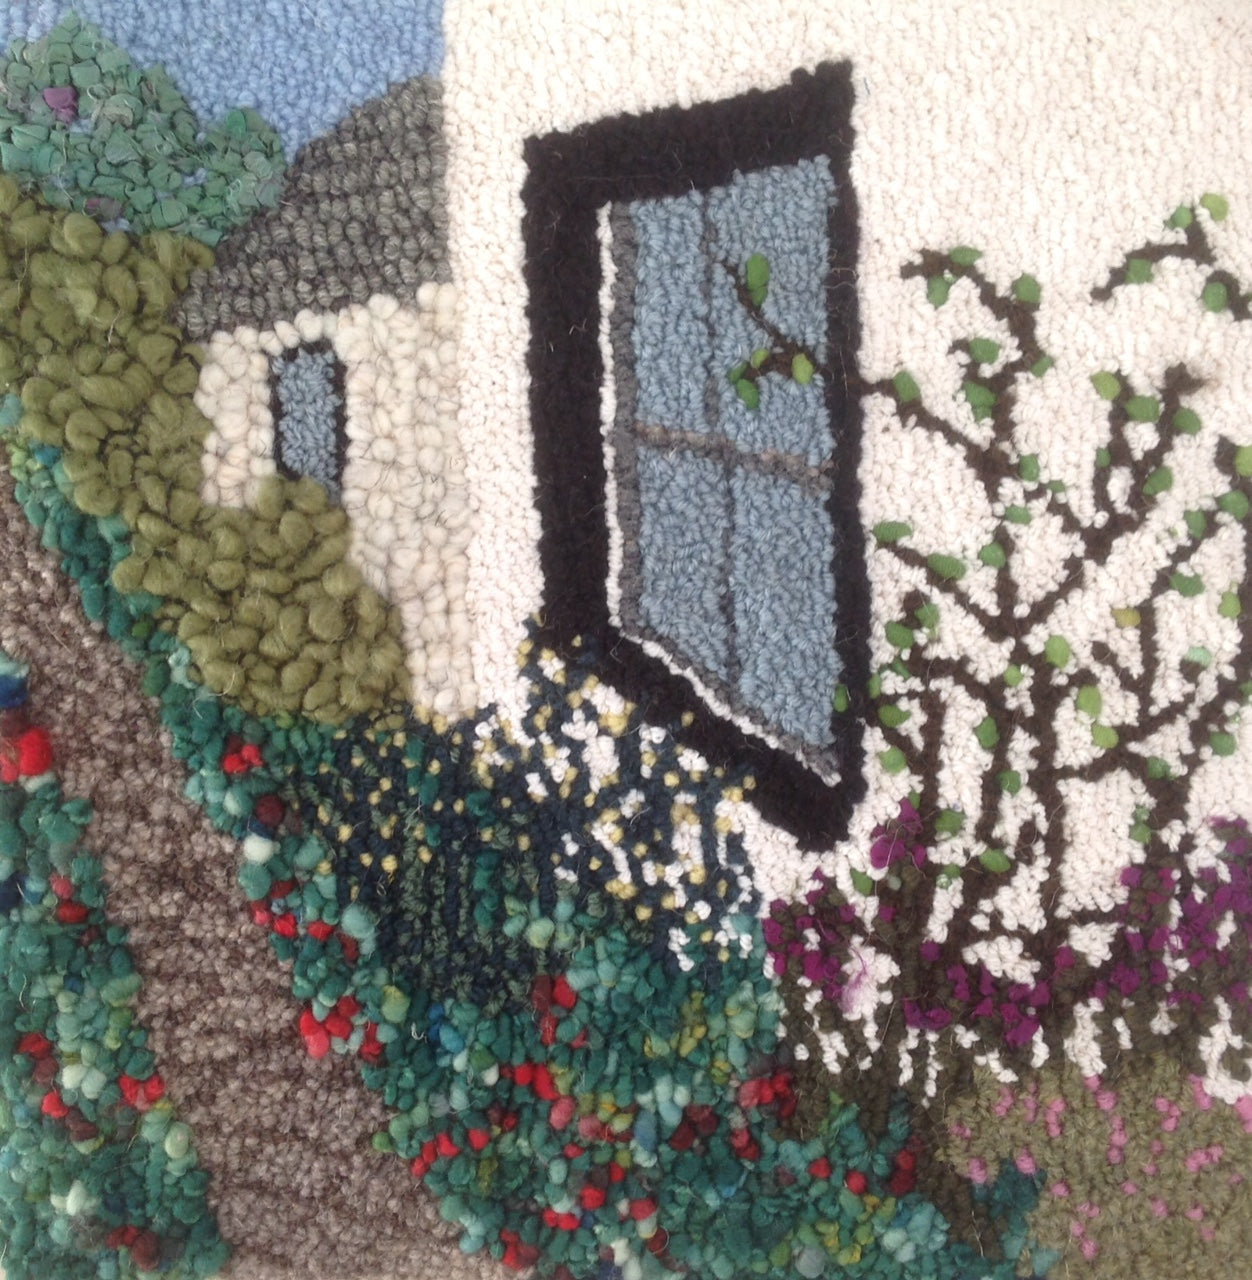 Angles and Architecture Rug Hooking Design Workshop, May 20 & 27, 2021